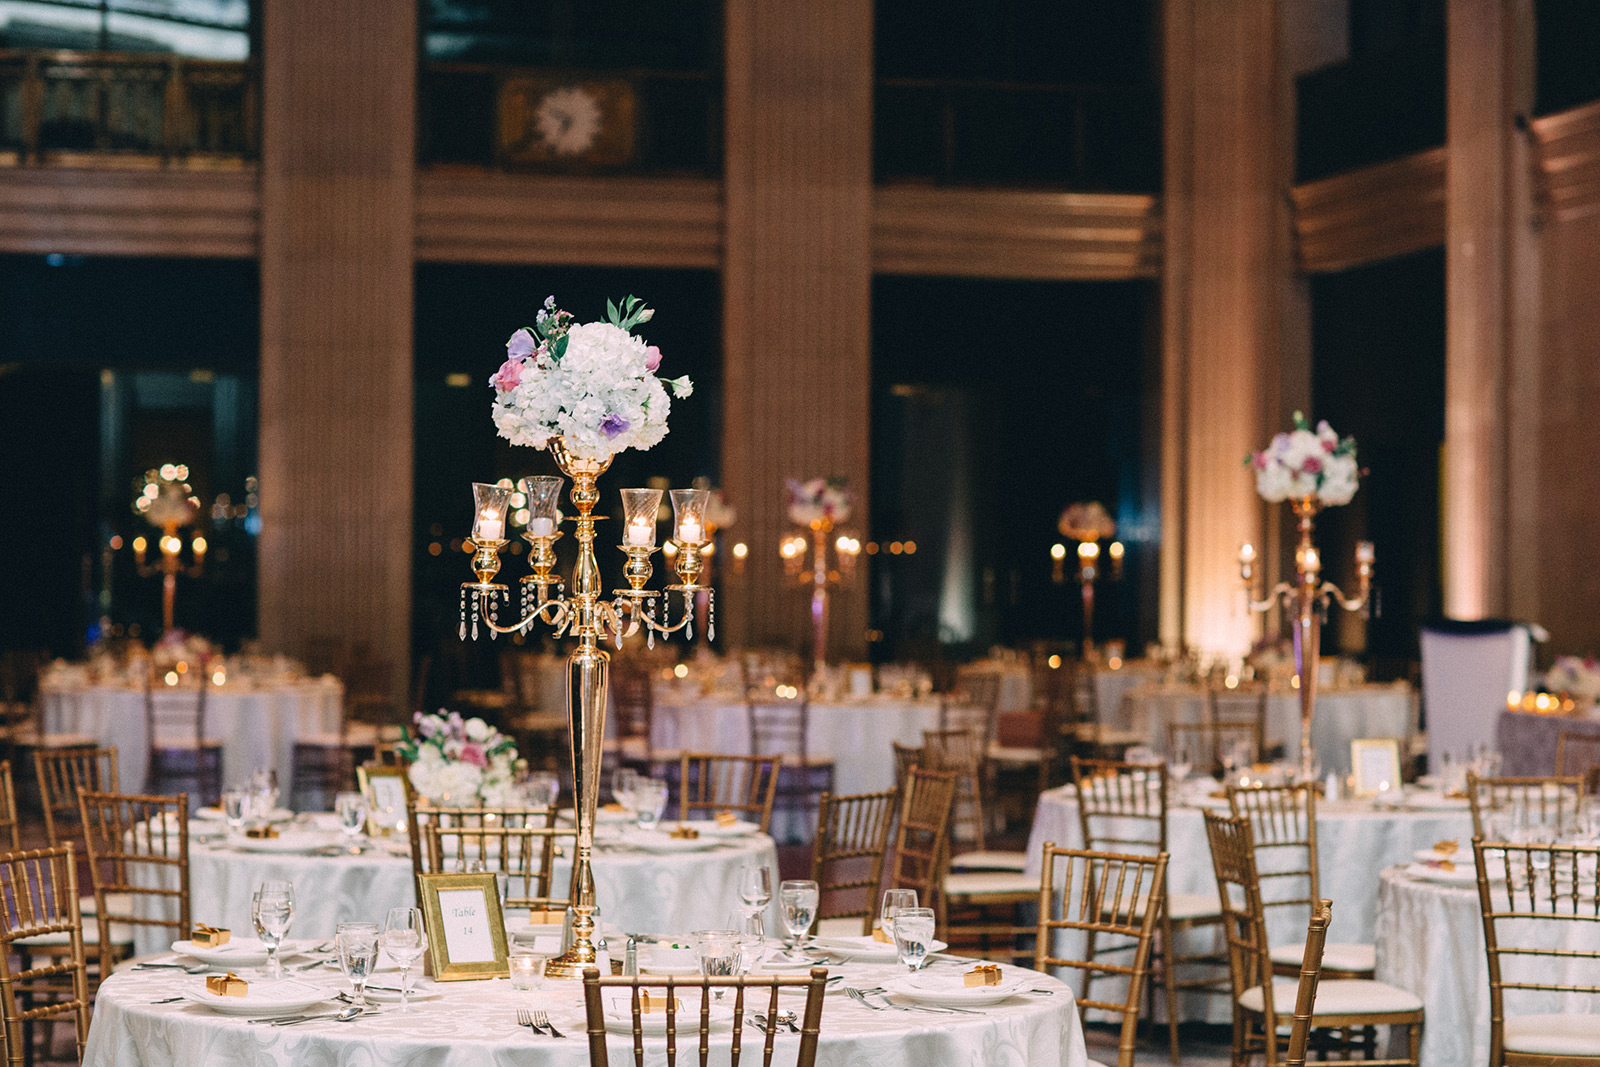 One-King-West-Toronto-wedding-photography_Sam-Wong-of-Visual-Cravings_KnR-32